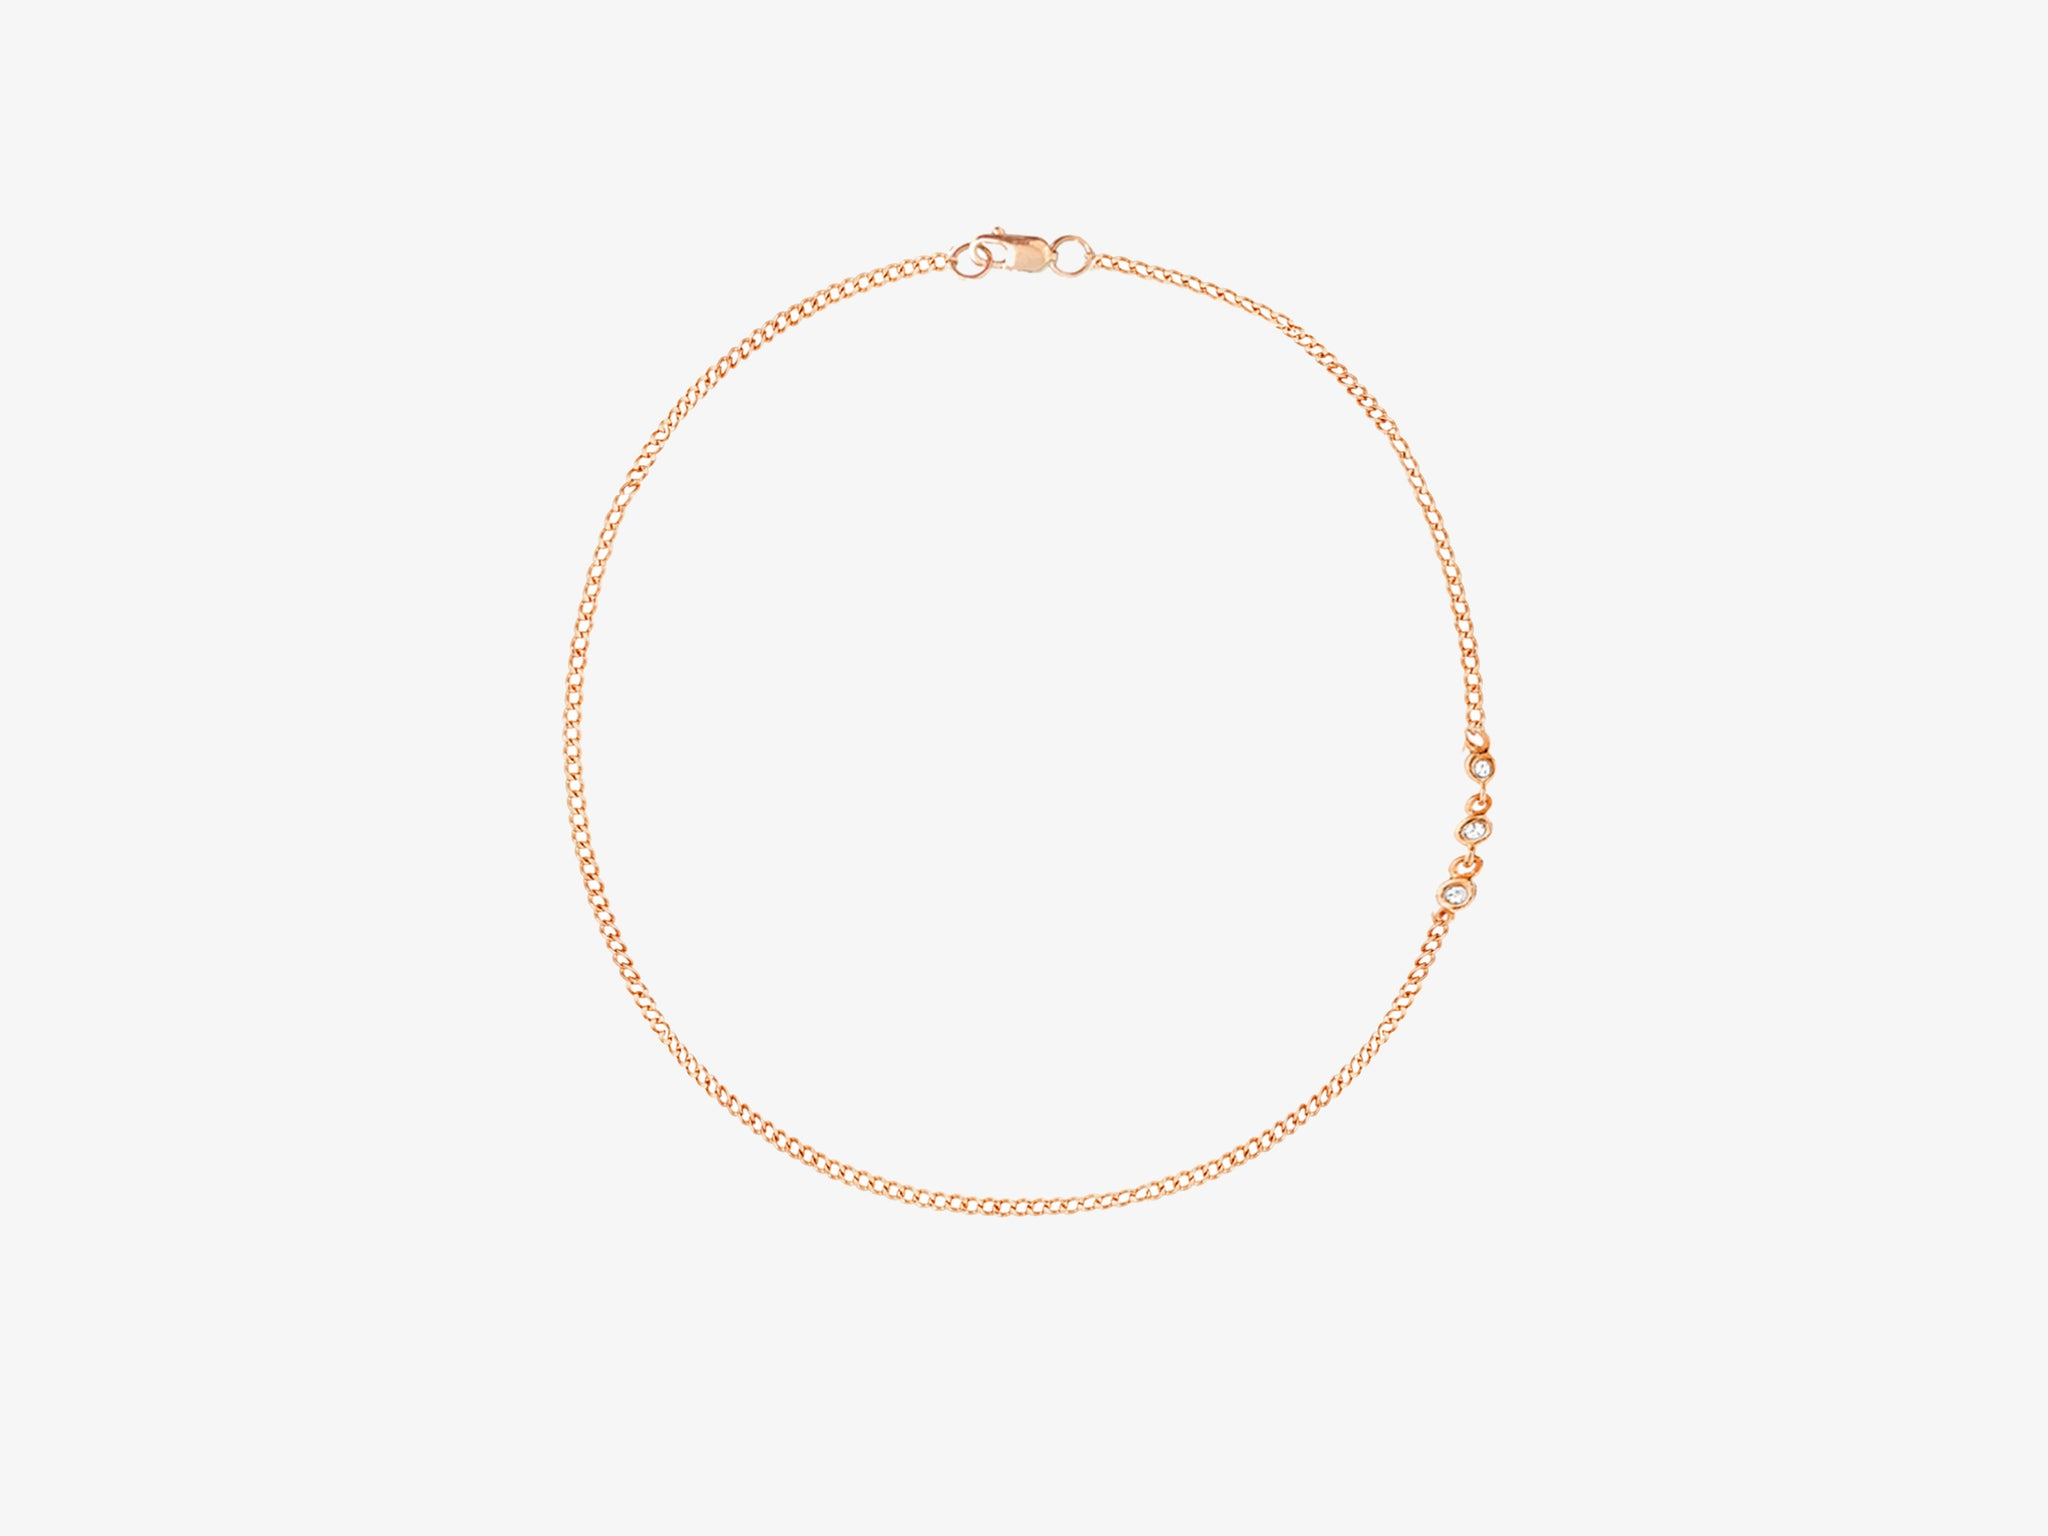 Chain Anklet with Three Diamond Pave Station Details